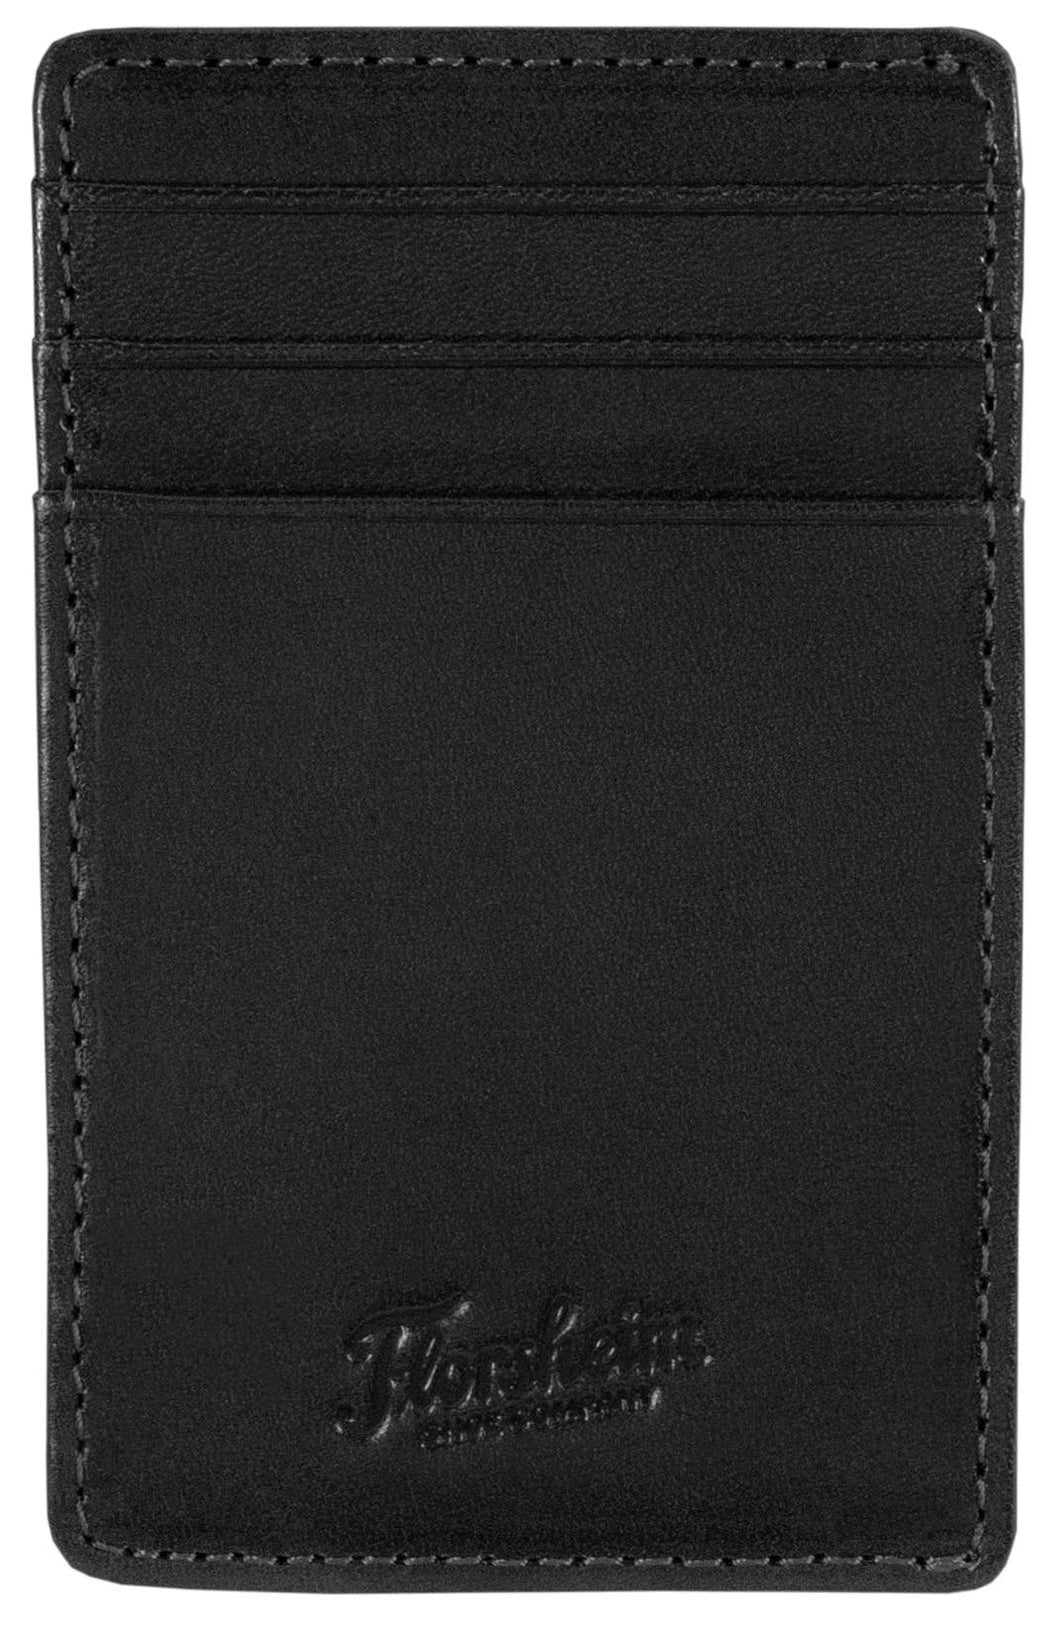 Cleveland Money Clip - Black